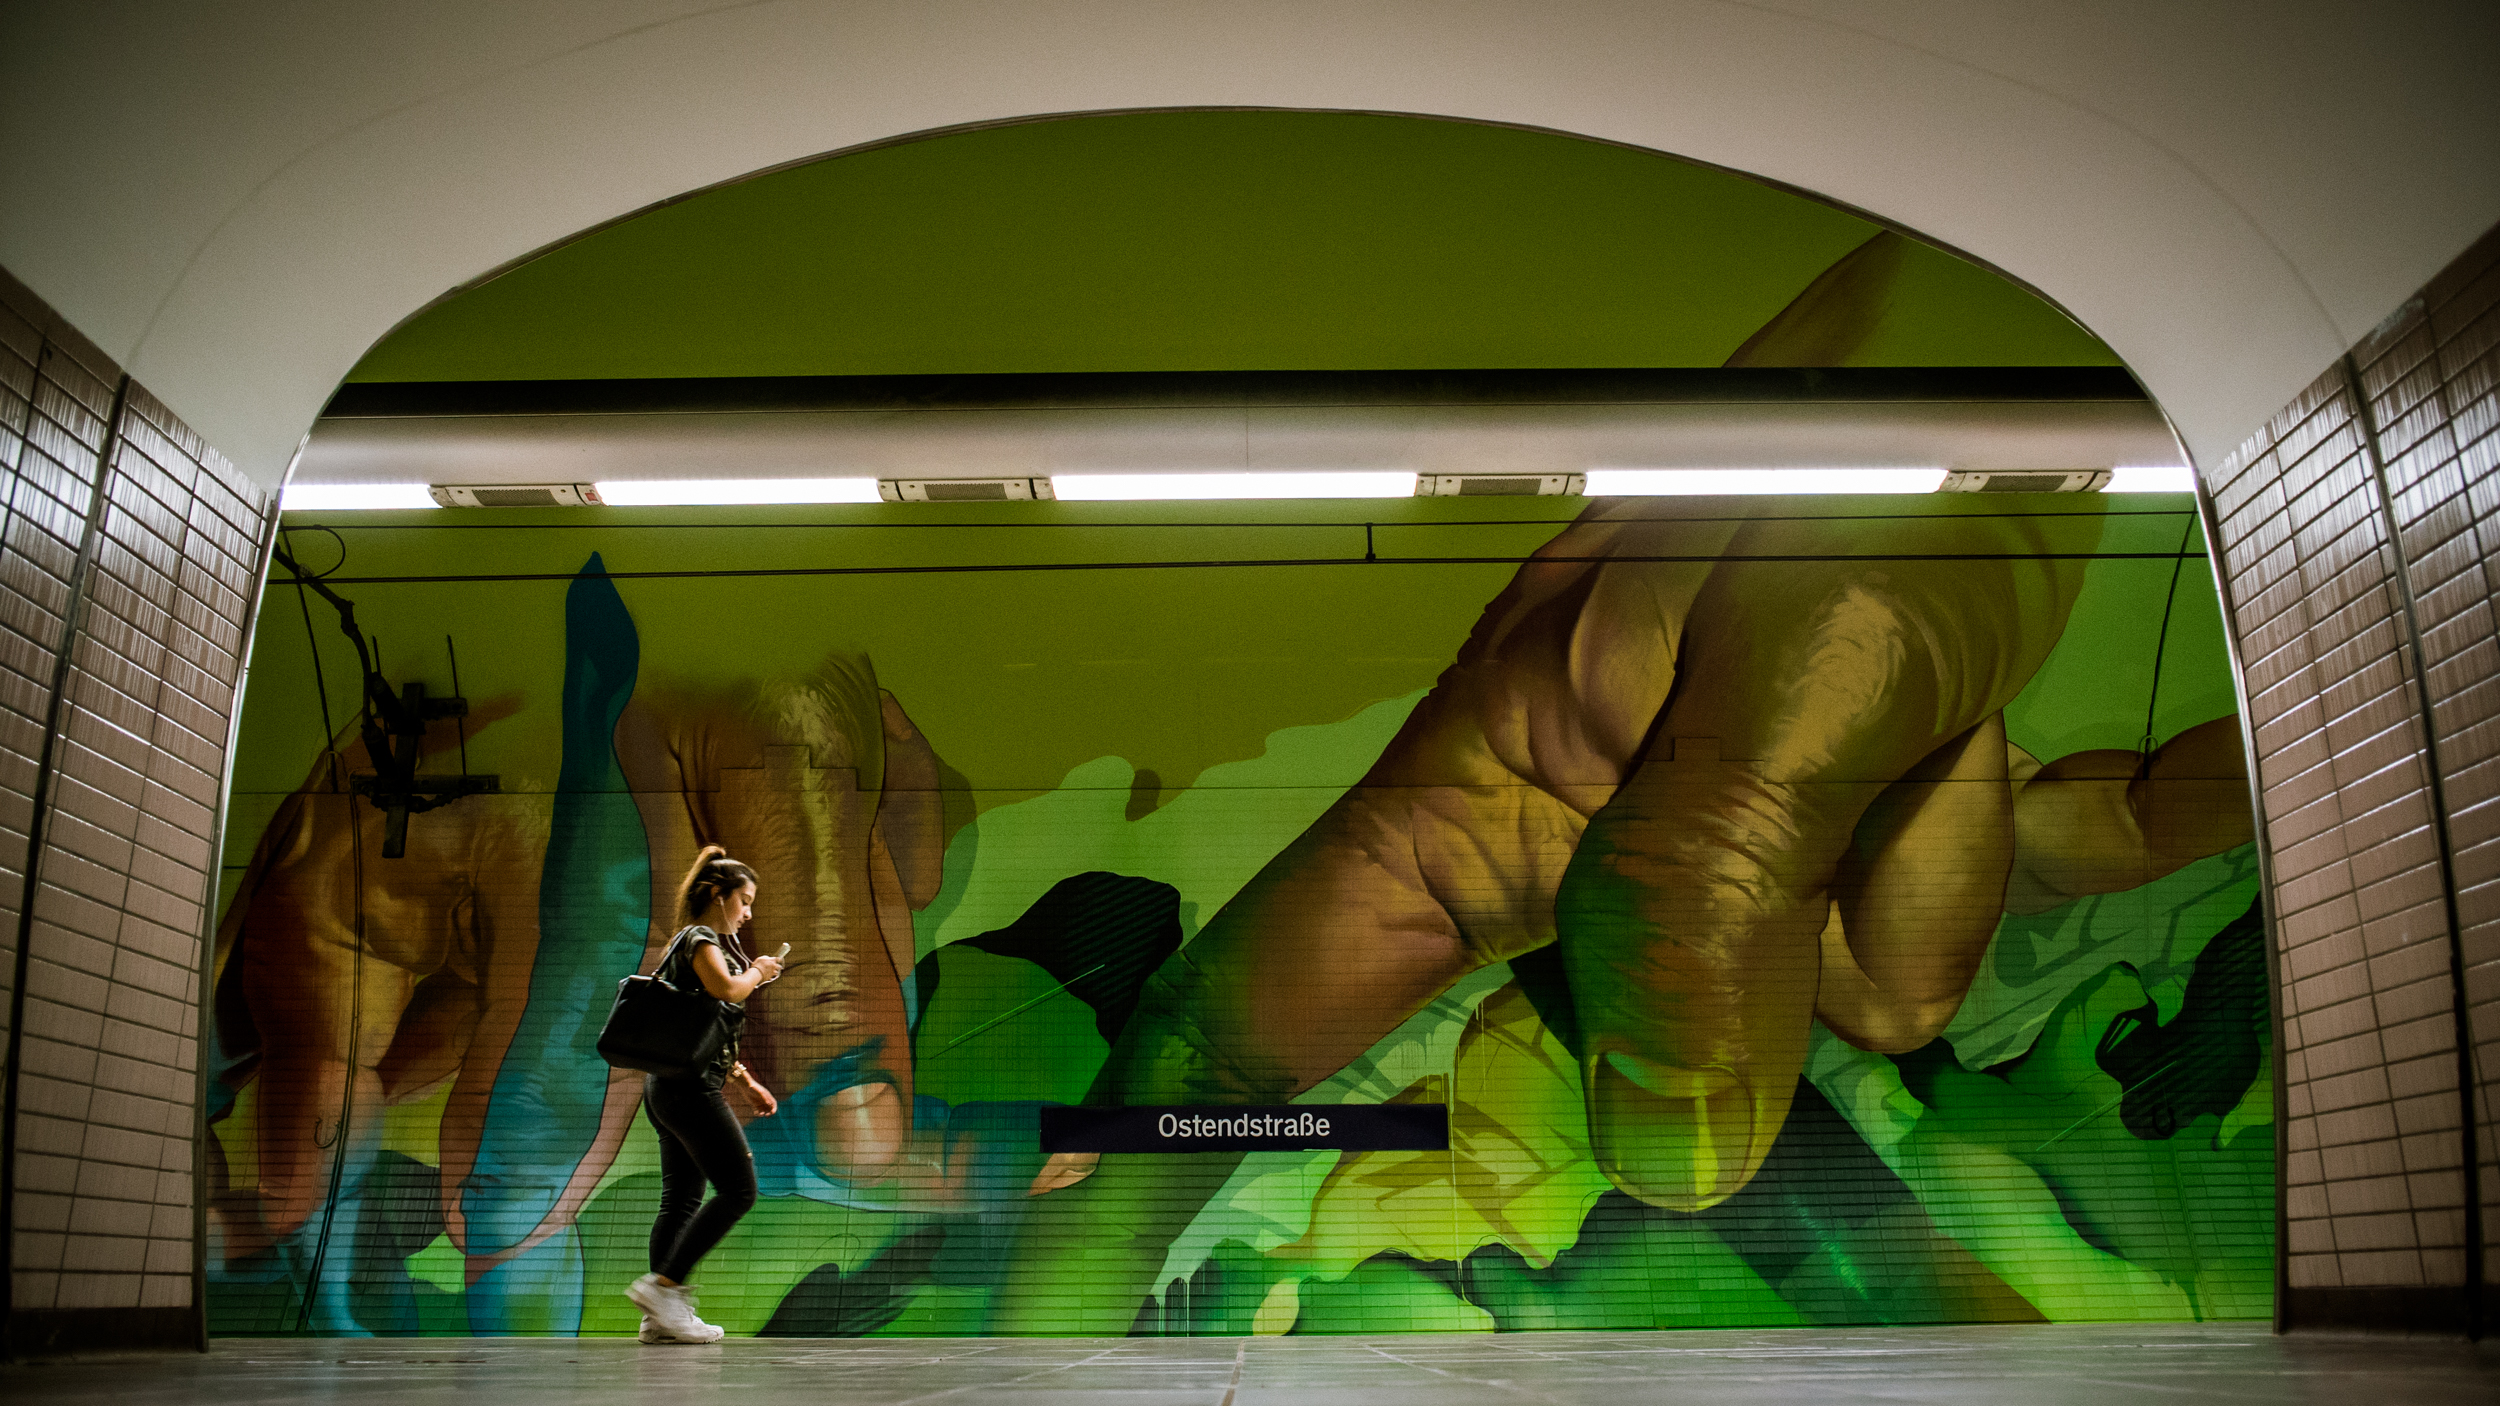 A work by Does - Ostendstrasse frankfurt germany tunnel 16